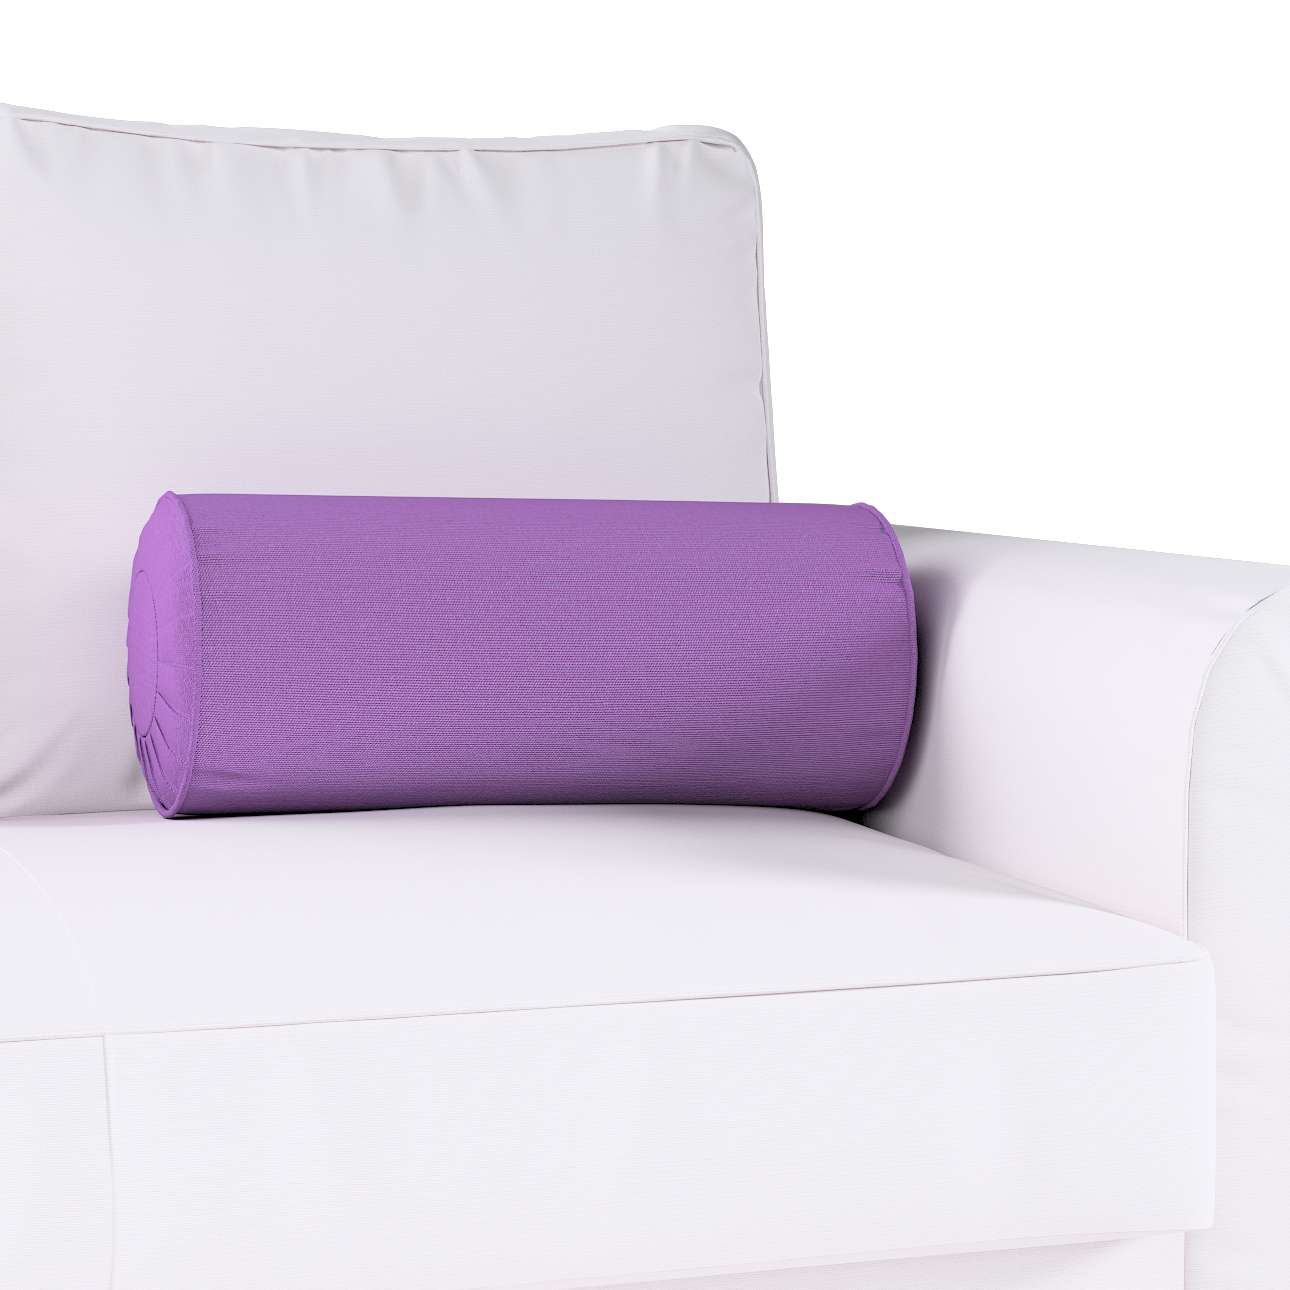 Bolster cushion with pleats Ø 20 × 50 cm (8 × 20 inch) in collection Loneta , fabric: 133-19